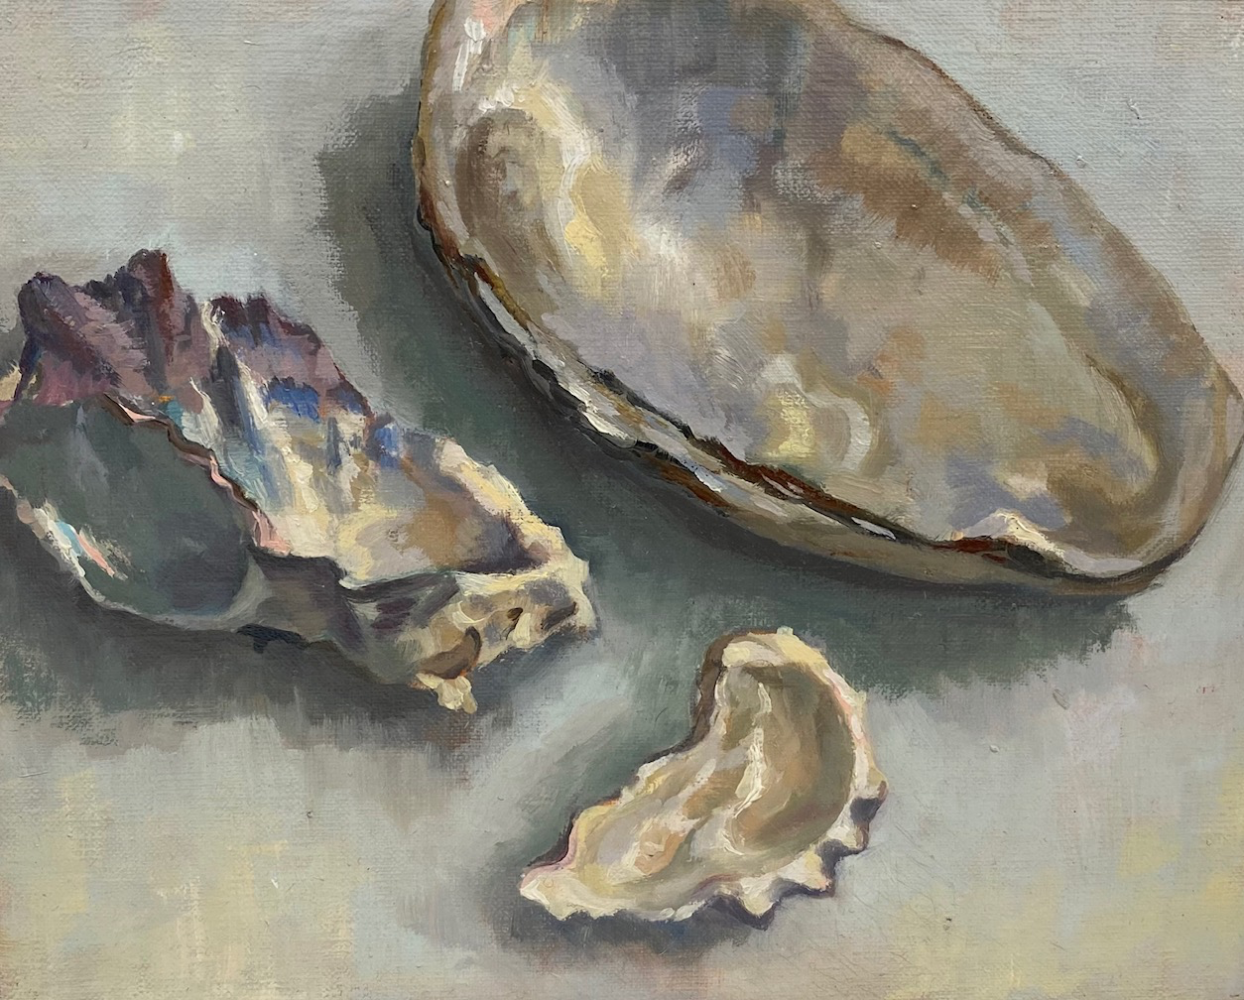 Fresh water mussels and oyster shells